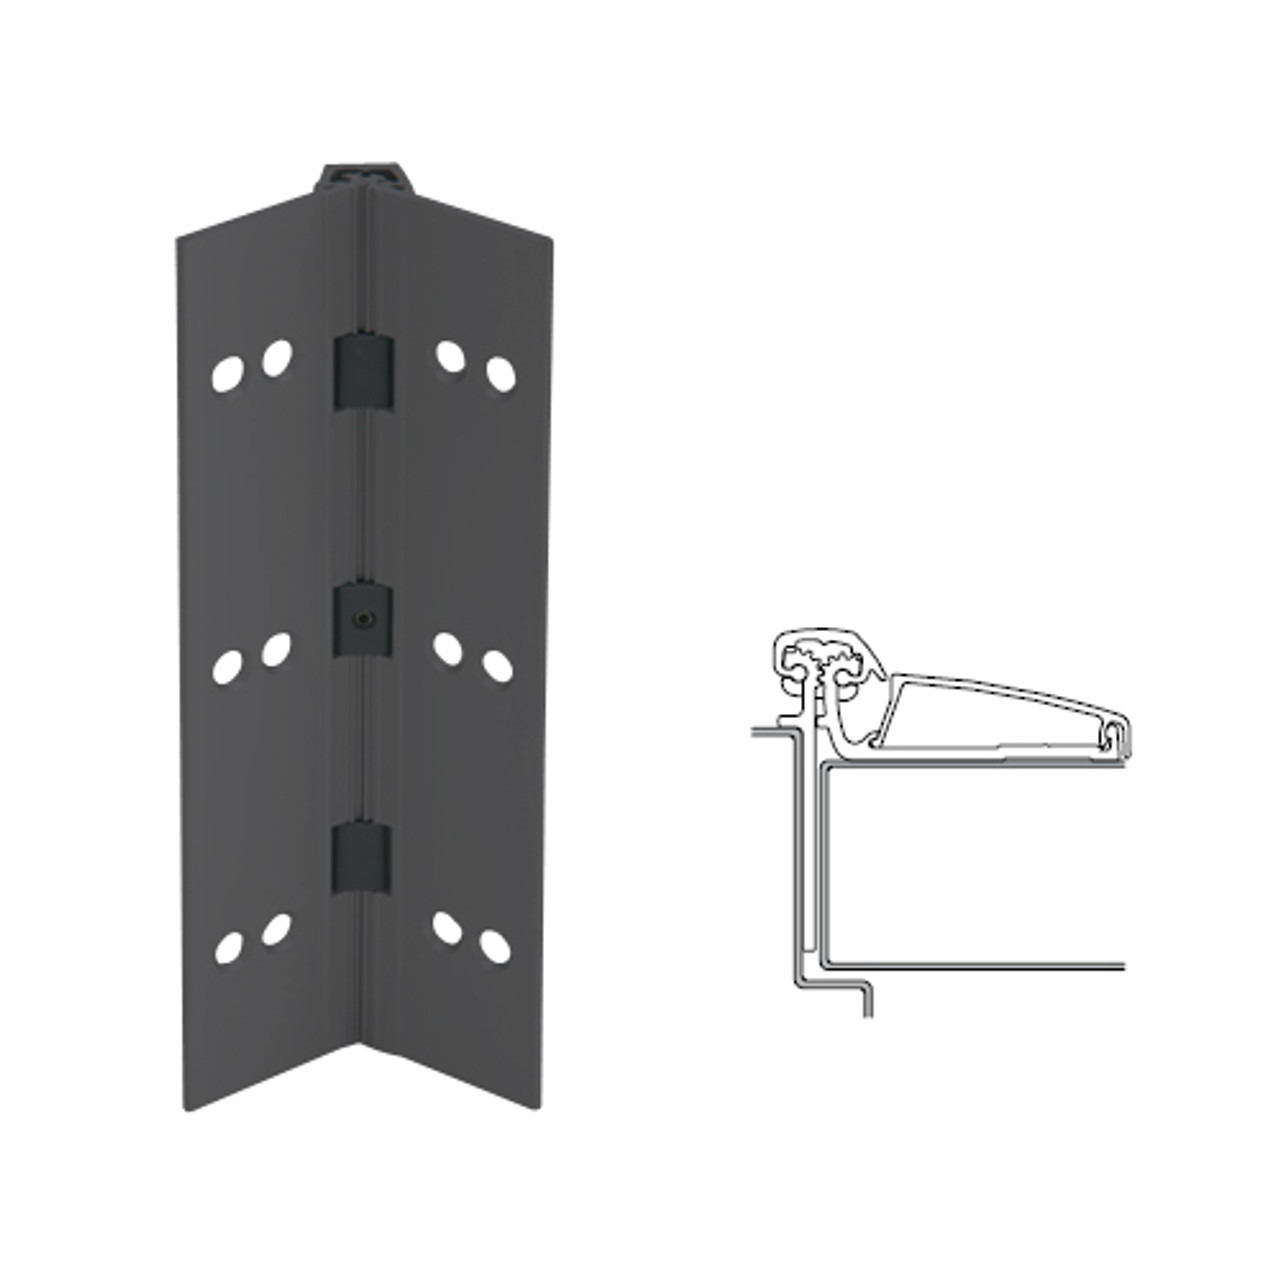 046XY-315AN-85-WD IVES Adjustable Half Surface Continuous Geared Hinges with Wood Screws in Anodized Black